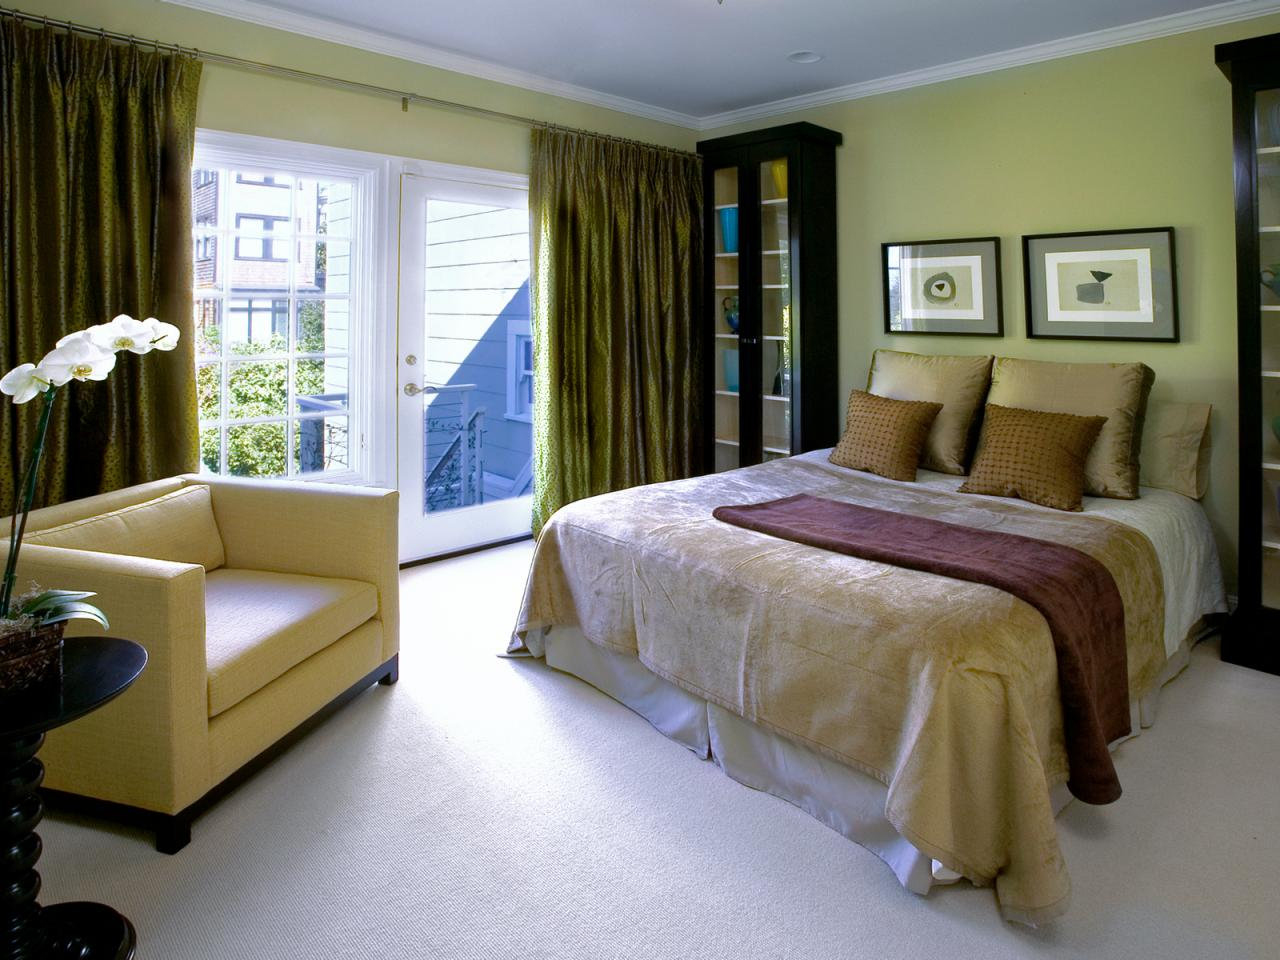 Photos hgtv - Brown and green bedroom ...